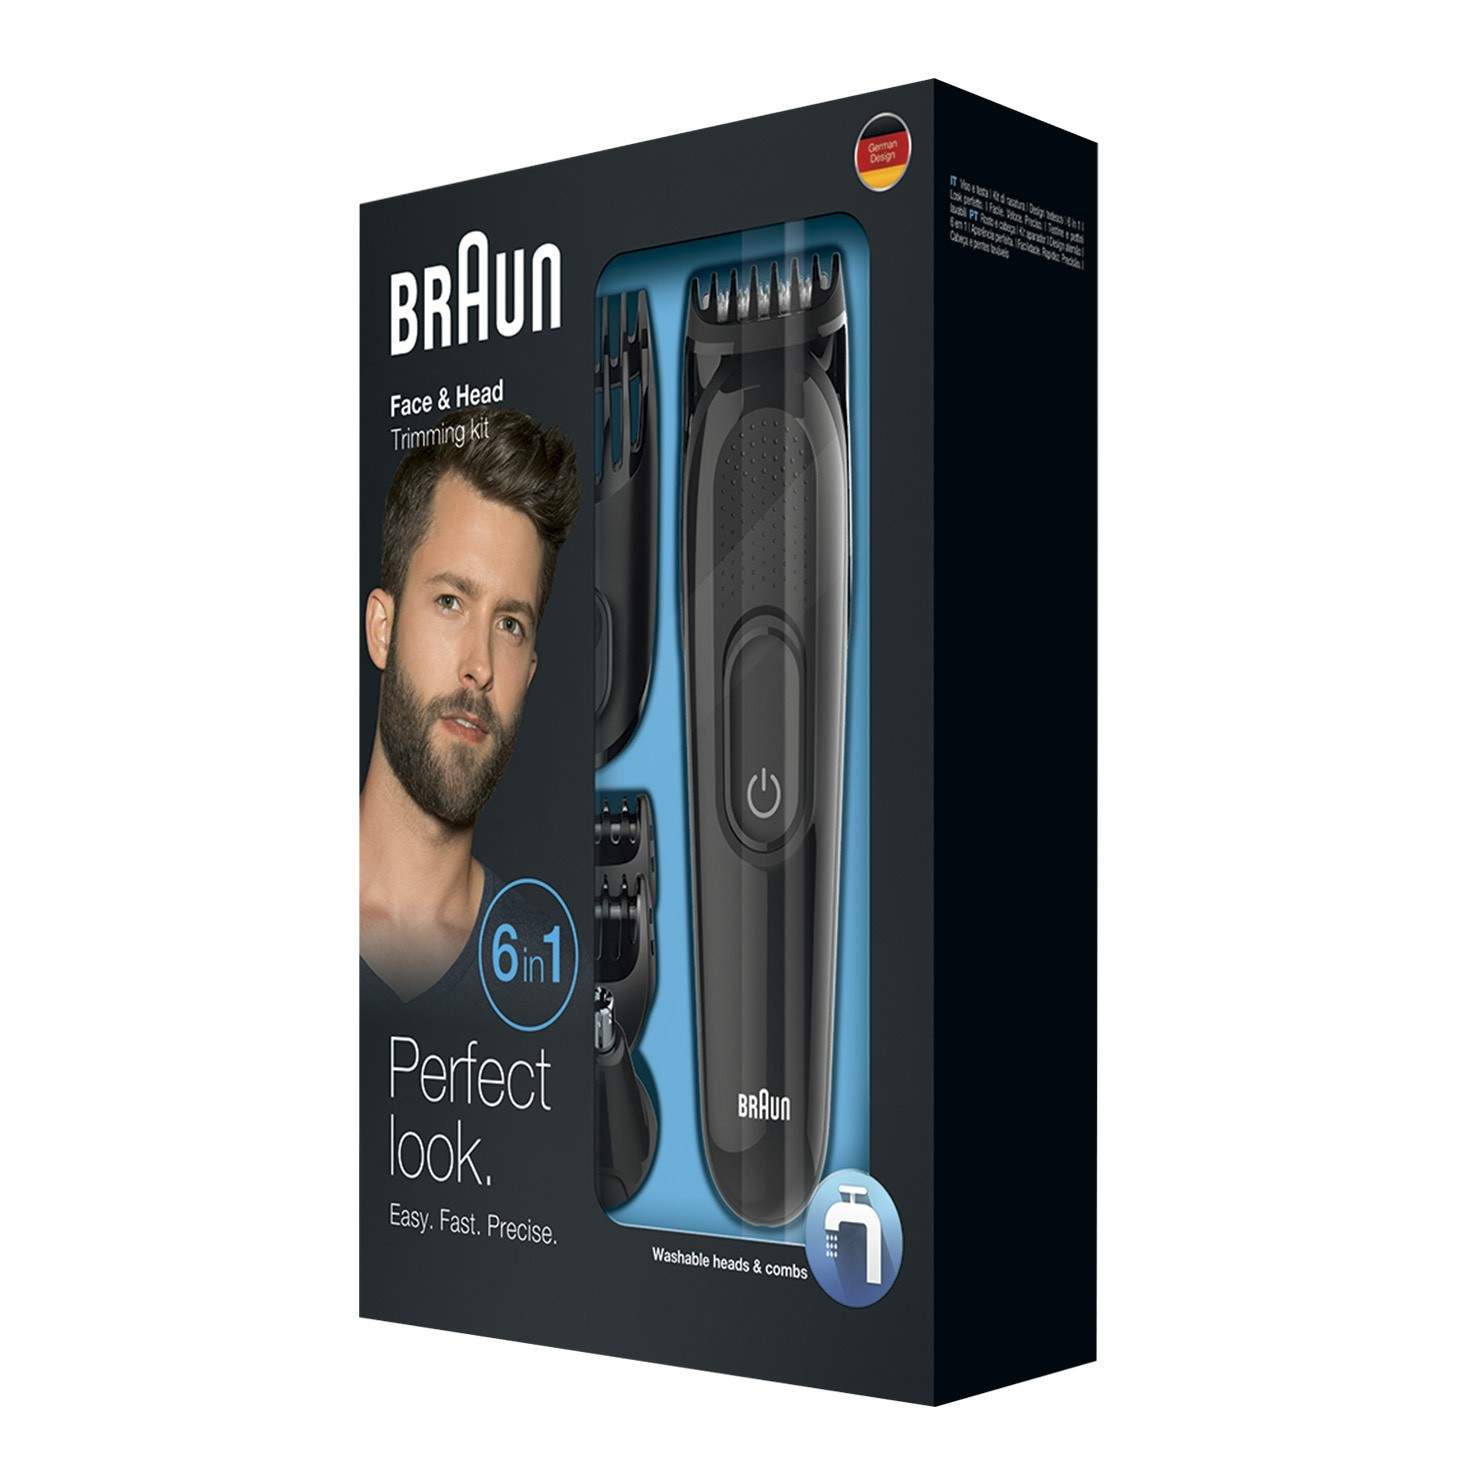 Braun multi grooming kit MGK3045 packaging